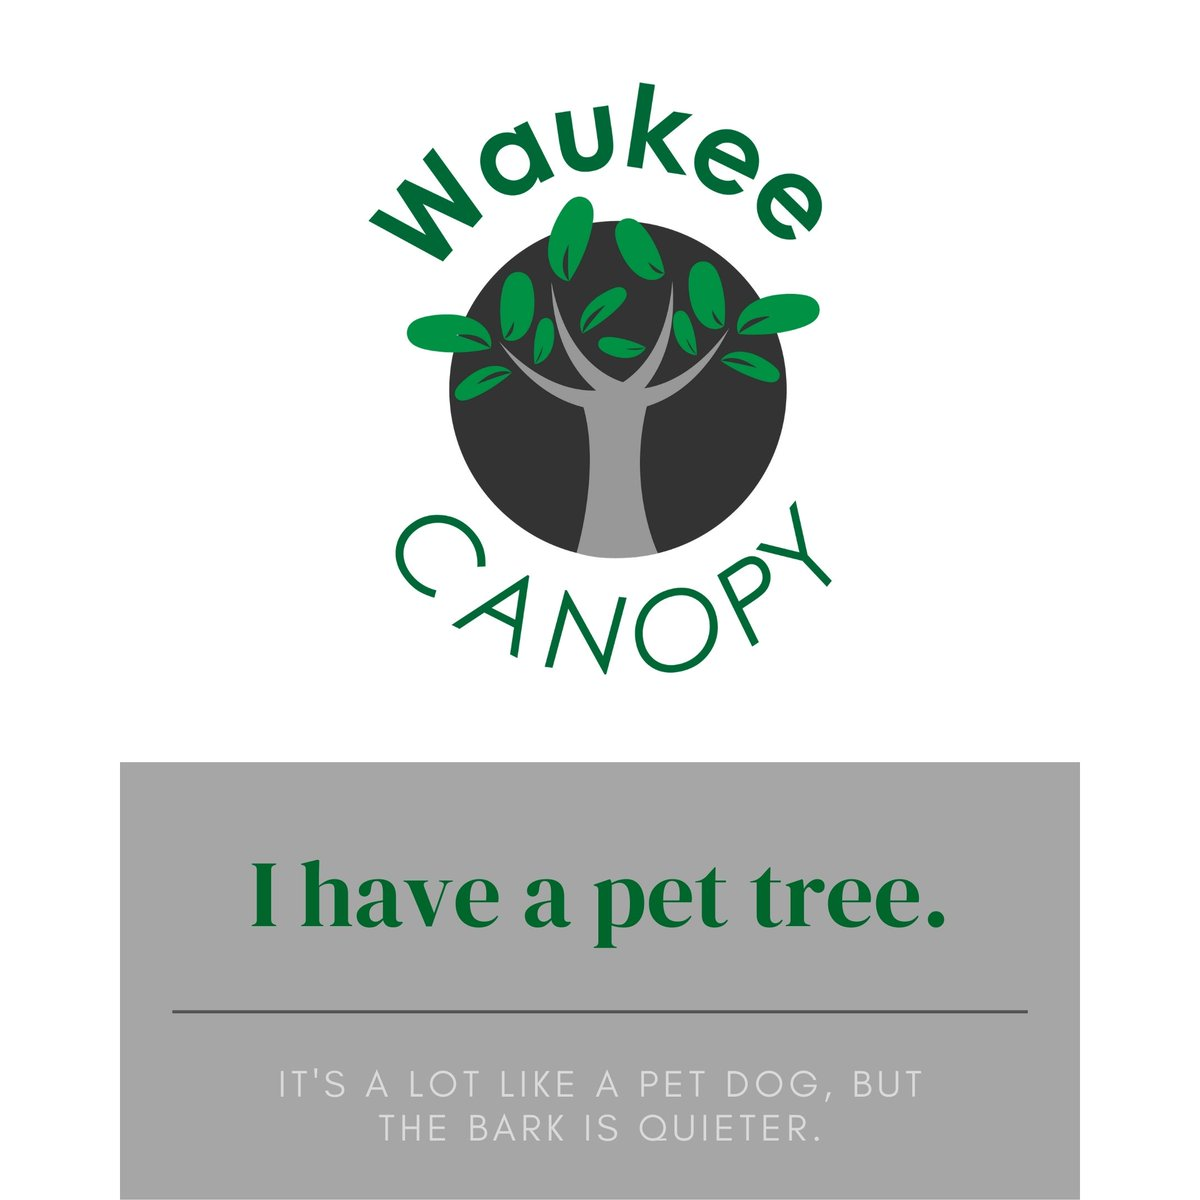 Starting Aug. 15, WAUKEE RESIDENTS can get two low-cost trees through the Waukee Canopy program! Orders begin at 8 a.m. until sold out, so make sure to put it on your calendar. To learn more, go to .